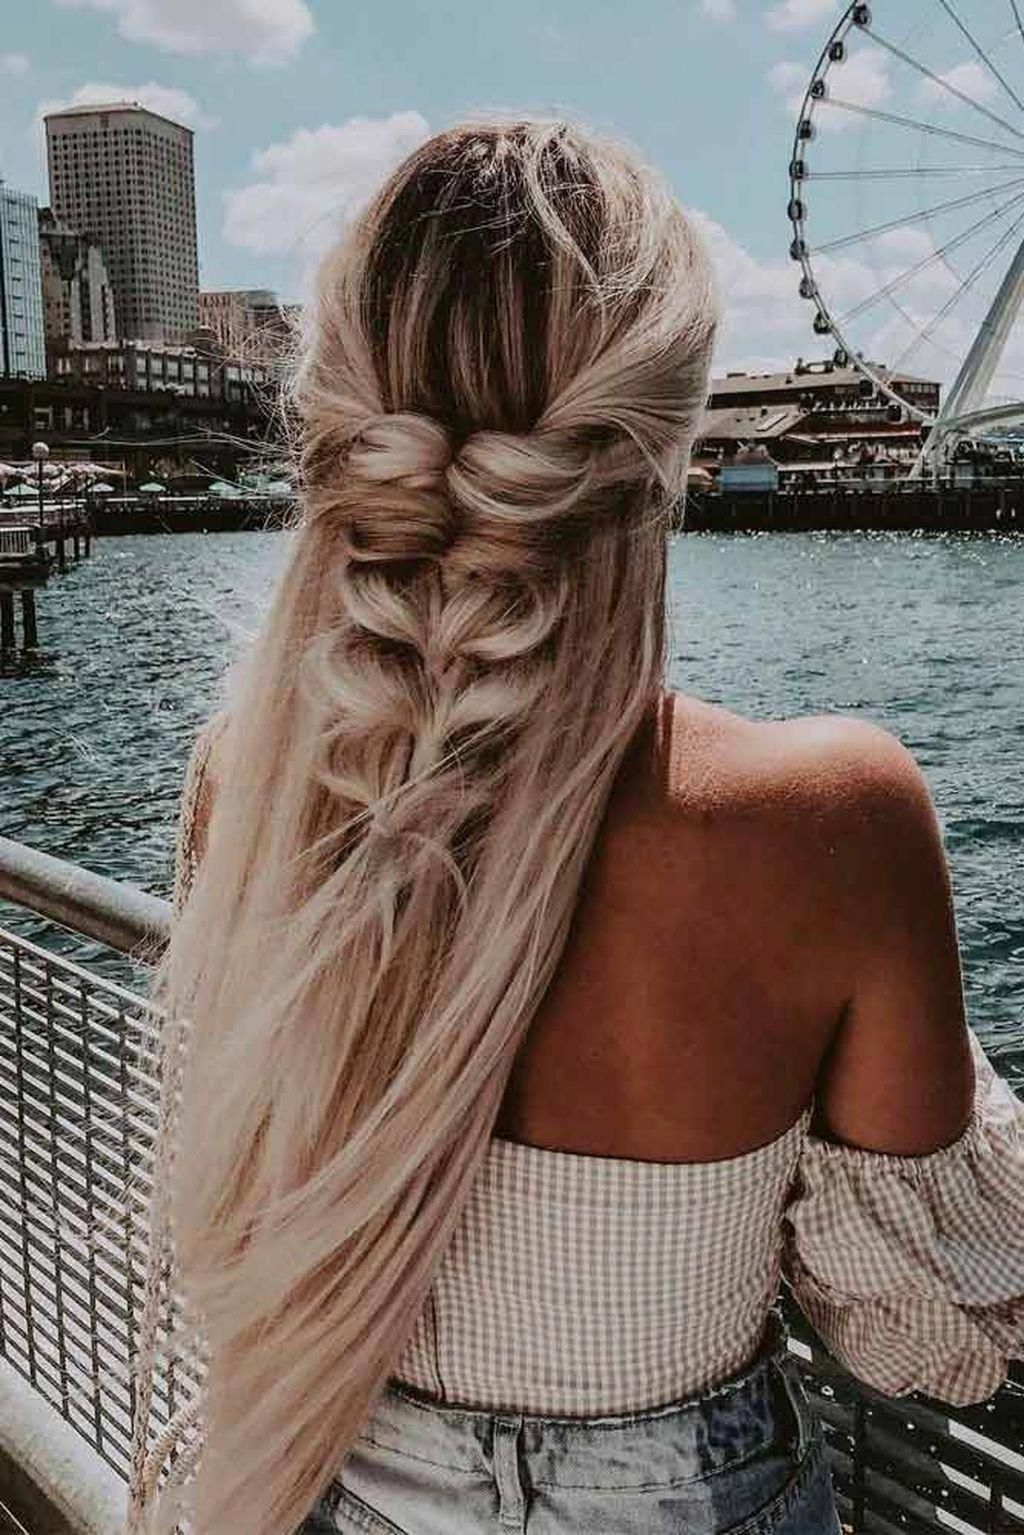 Cute Short Hairstyles | Going Out Hairstyles For Long Hair | Easy Updo With Bangs 20190427 ...